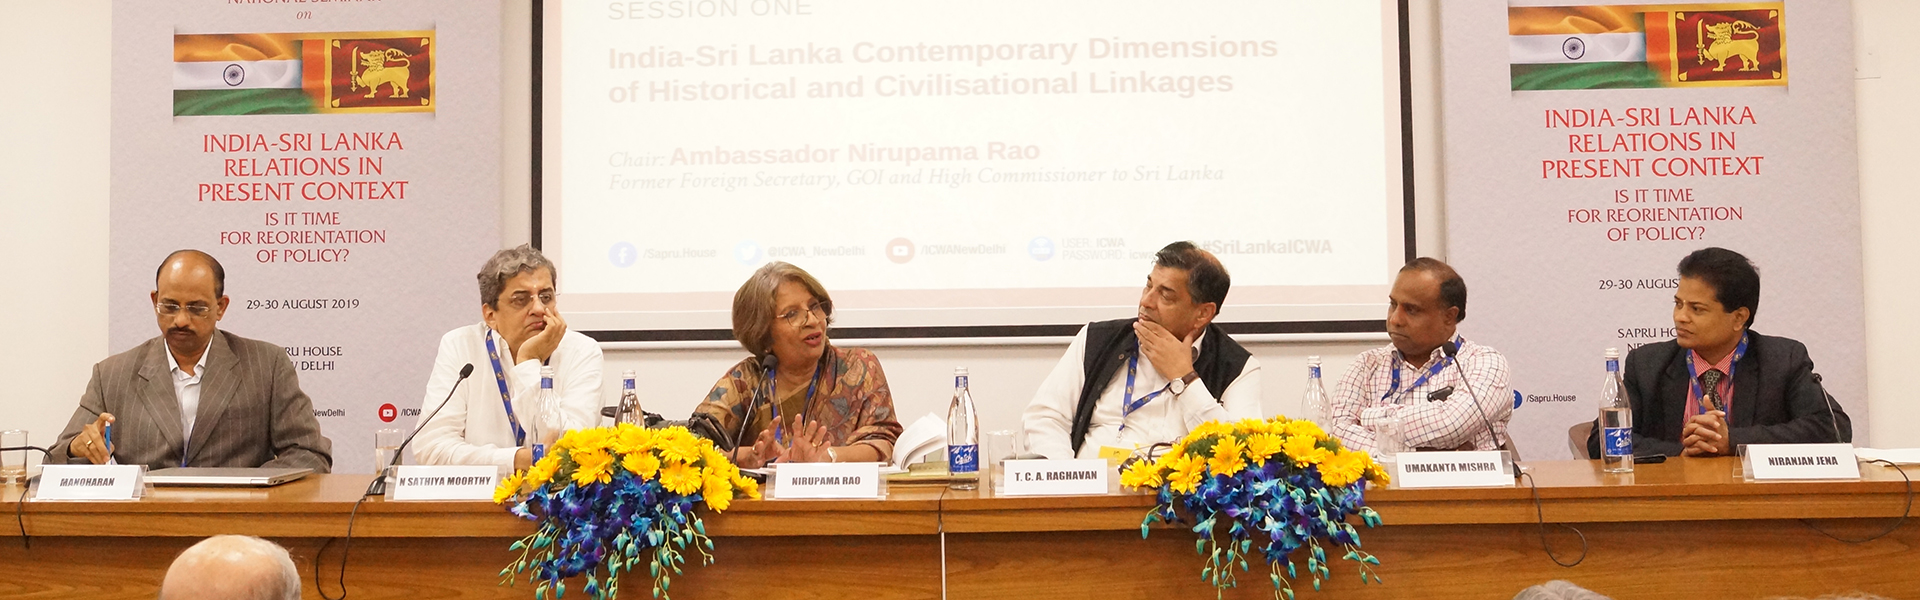 "Ambassador Nirupma Rao, former foreign Secretary, GOI, chairing the first session of the National Seminar on ""India-Sri Lanka Relations in Present Context? Is it the Time for Reorientation of Policy?"", Sapru House, 29 August 2019."